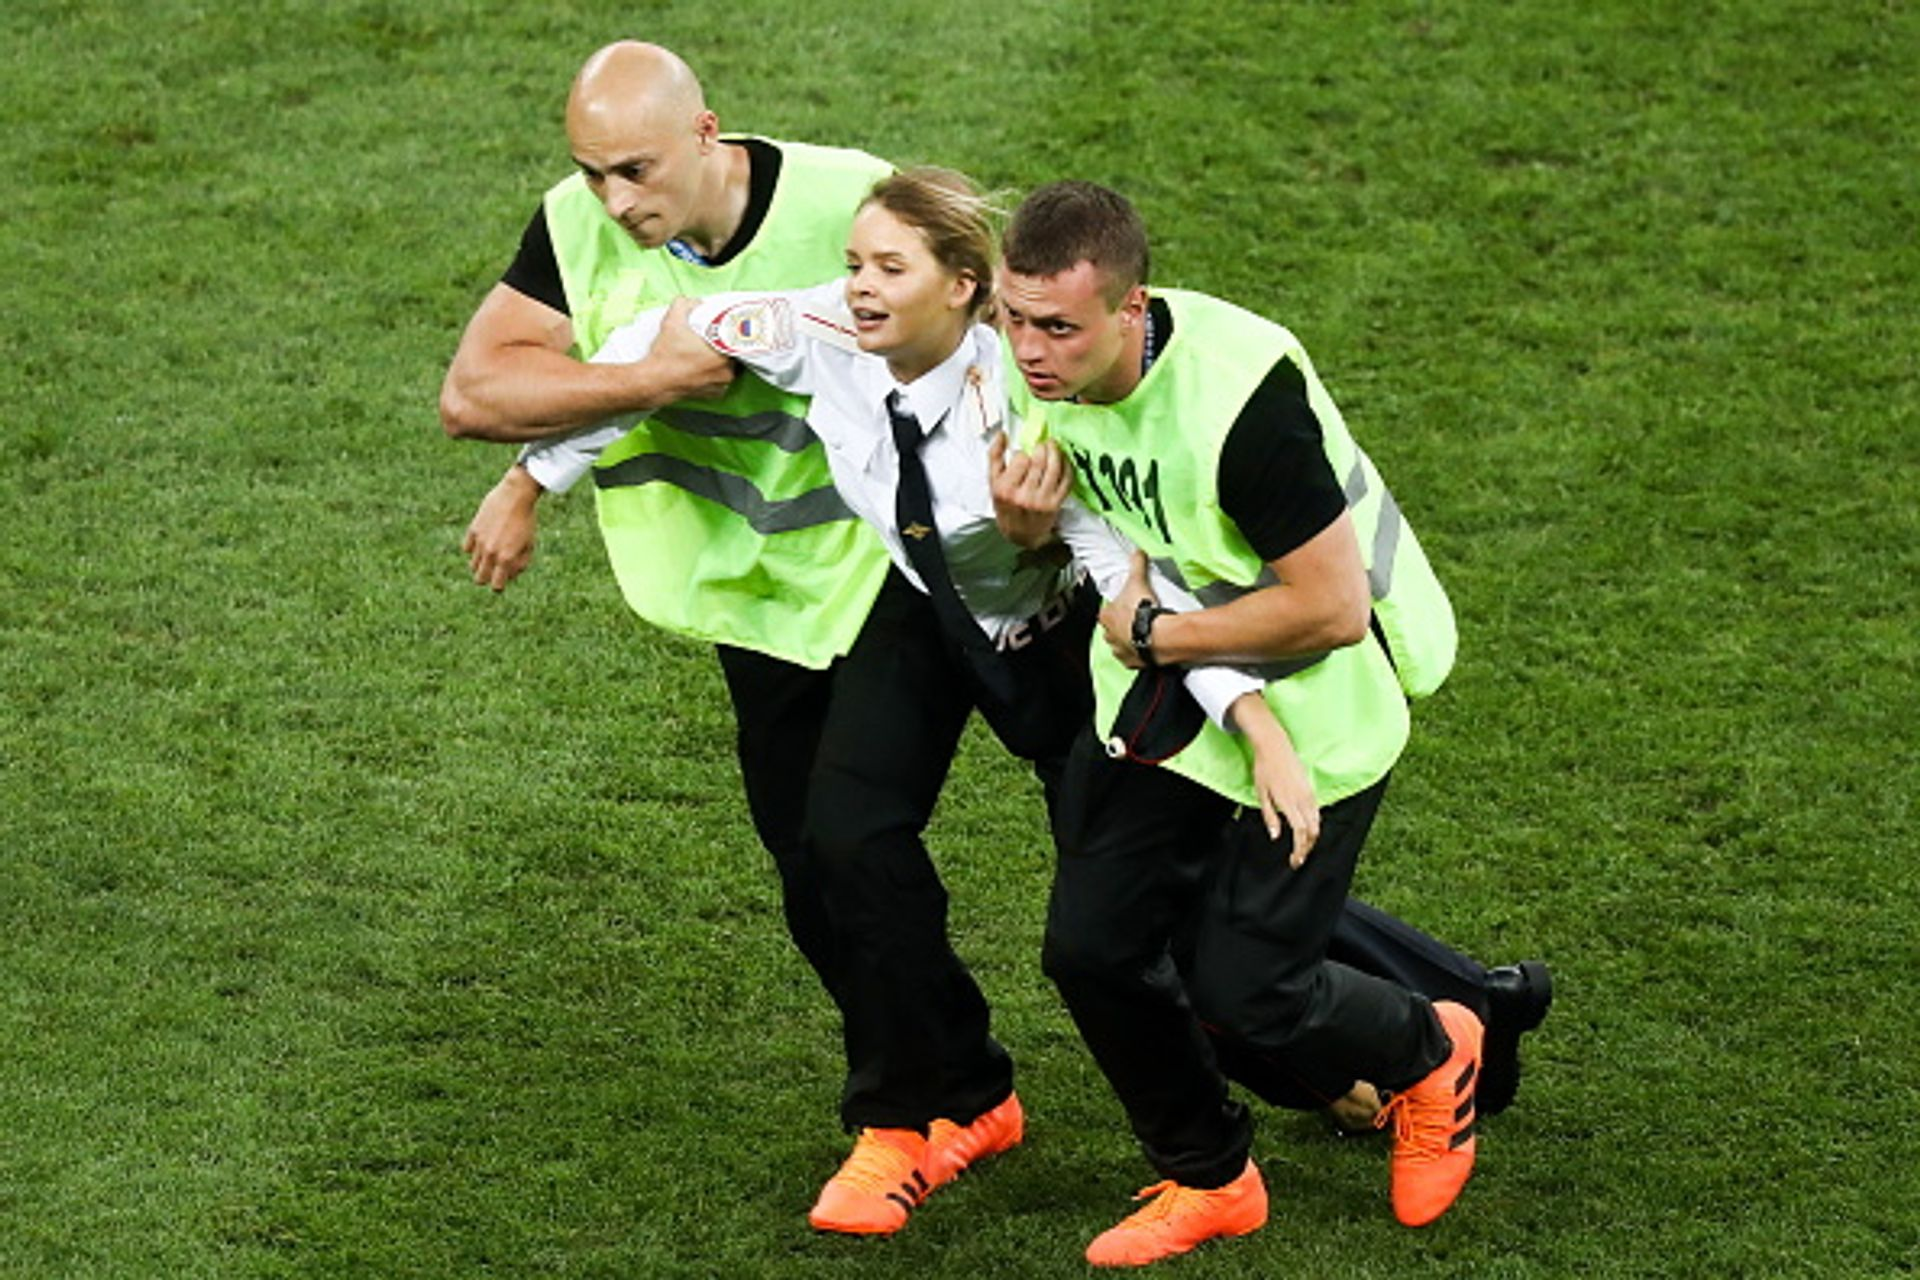 Security guards detain one of the pitch invaders during the 2018 FIFA World Cup final match at Luzhniki stadium in Moscow Stanislav Krasilnikov/TASS via Getty Images